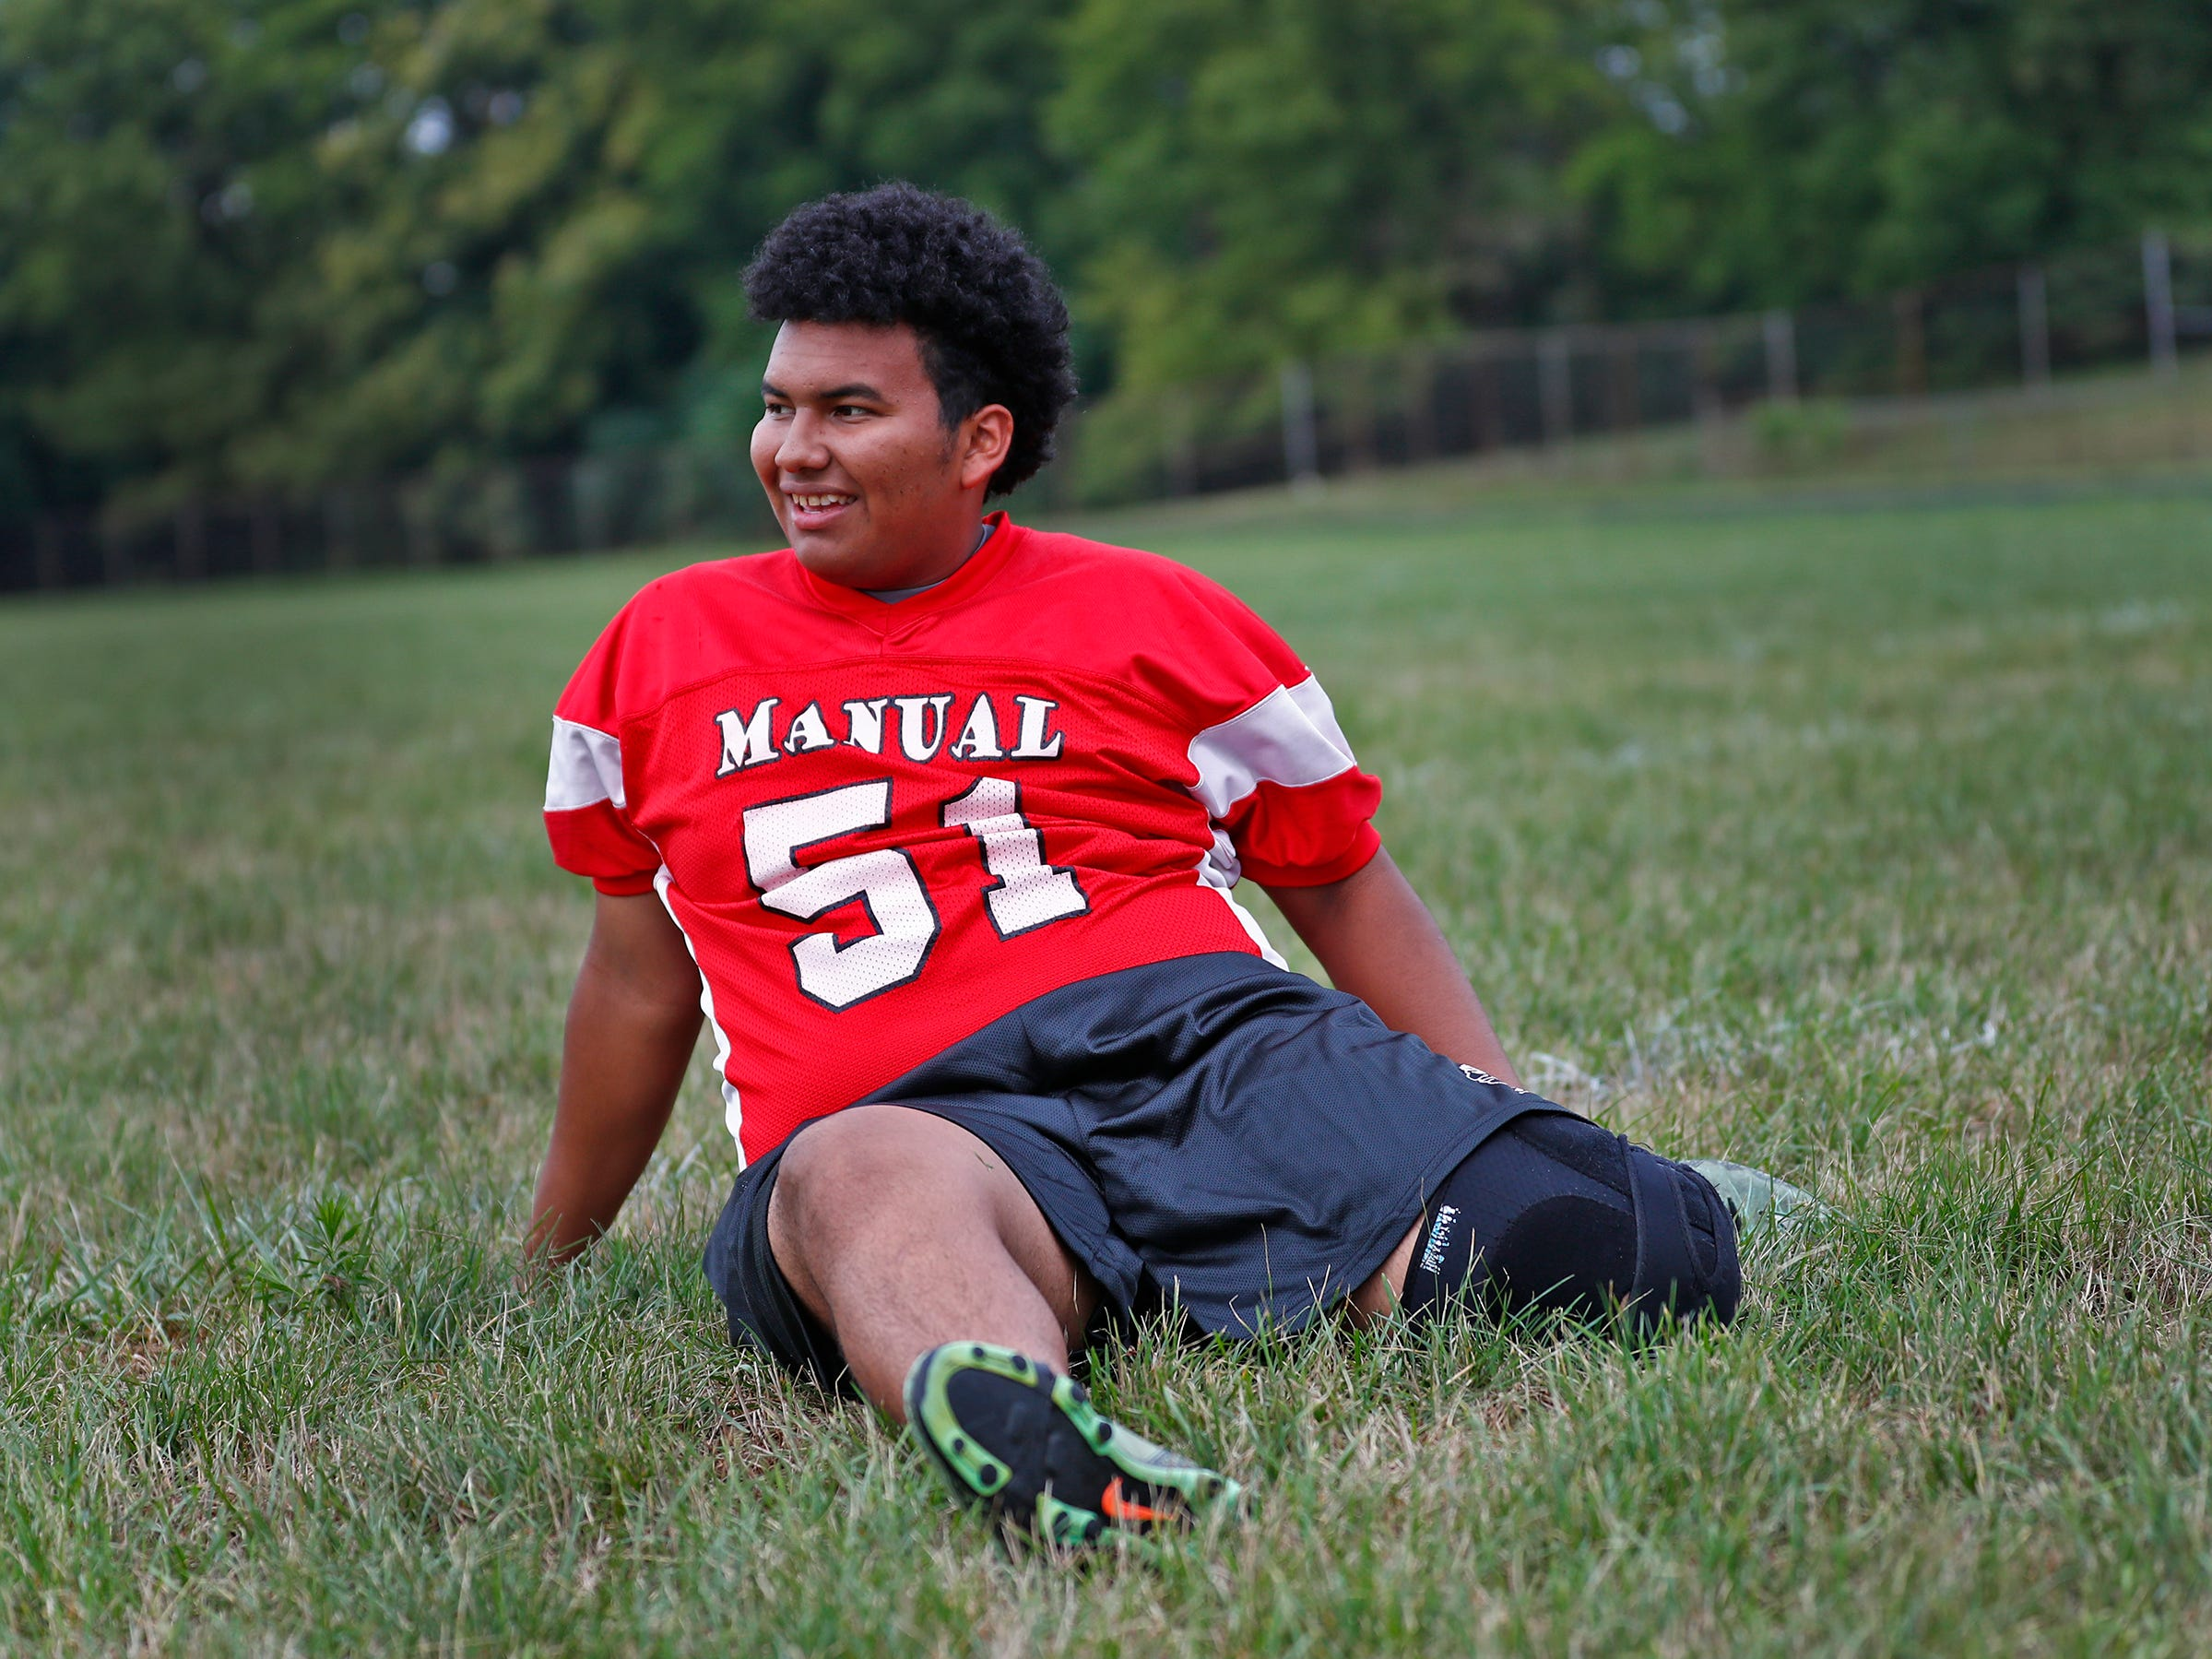 Lester stretches before practicing kicking at Emmerich Manual High School, Monday, July 31, 2018.  He moved to Indianapolis when he was 15 years old and is set to graduate from Manual in 2019.  Lester, an undocumented immigrant from Honduras, dreams of going to college.  He hopes that football will help him pay for that dream.